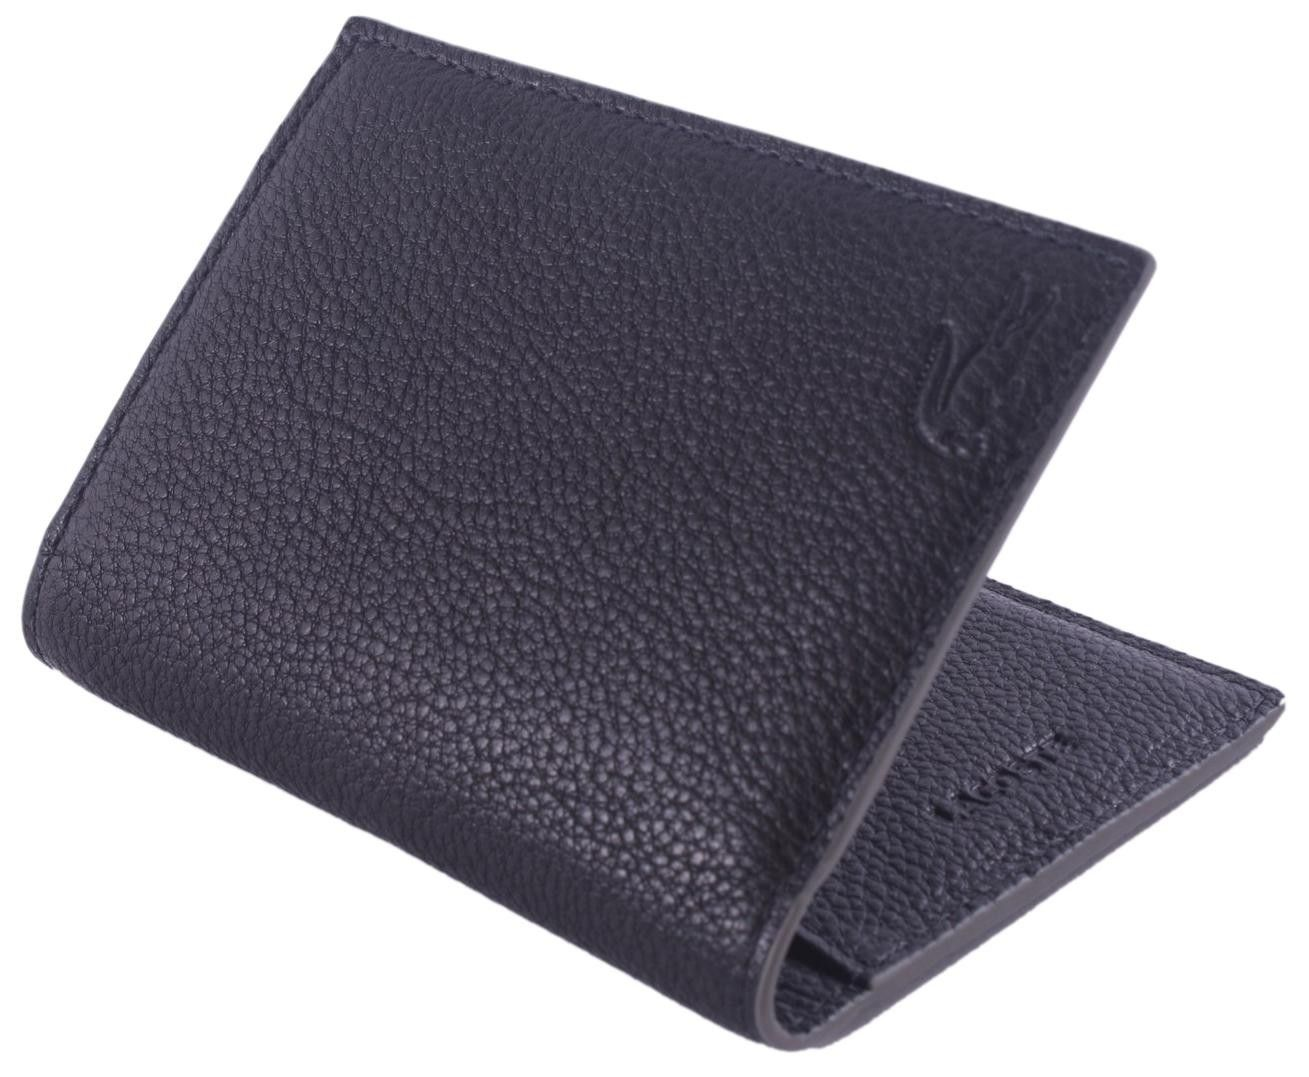 Lacoste Wallet - Black Business Card Wallet #Lacoste #Mens #Wallet ...